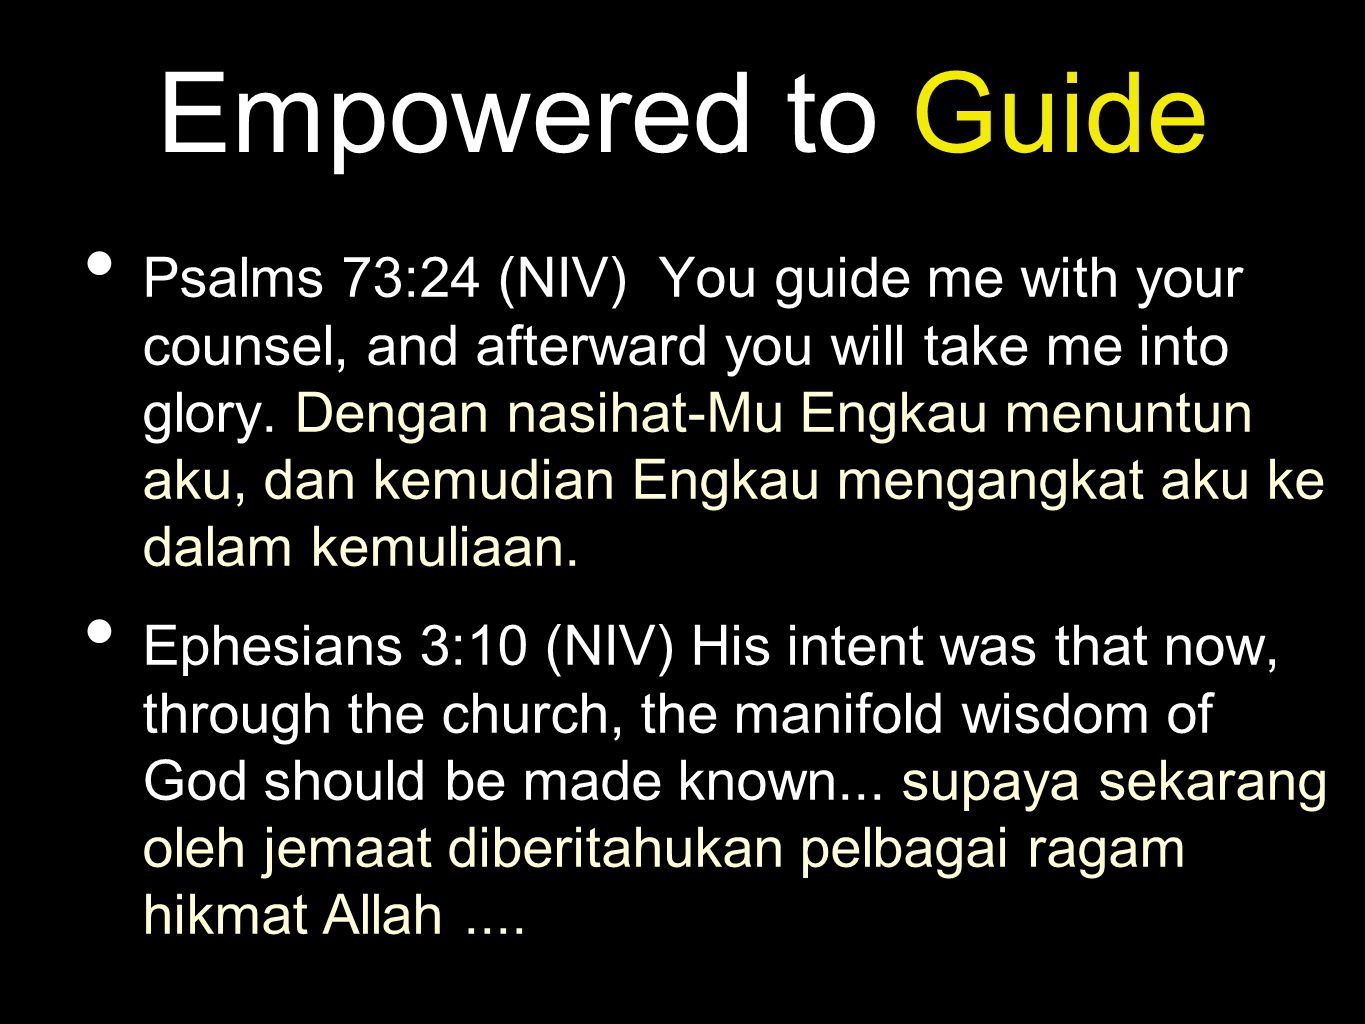 Empowered to Guide • Psalms 73:24 (NIV) You guide me with your counsel, and afterward you will take me into glory. Dengan nasihat-Mu Engkau menuntun a